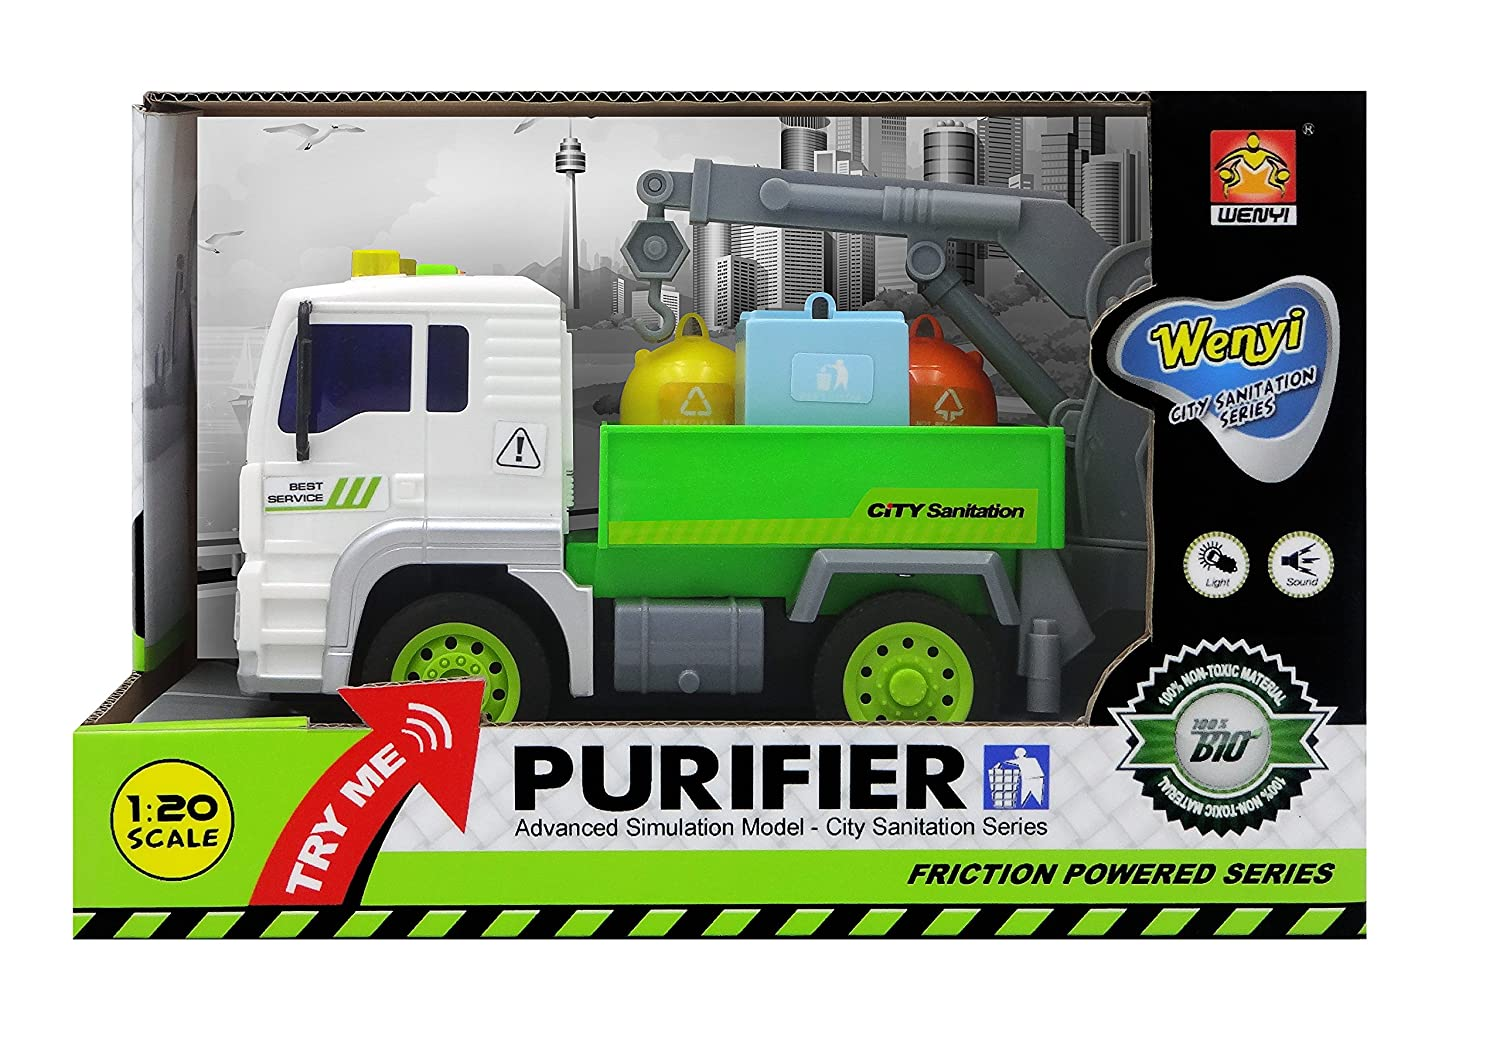 Get ready garbage truck coloring book - Amazon Com Funerica Trade Garbage Truck Toy With Sound Effects Lights Swivel Crane For Loading 3 Colored Sanitation Garbage Cans Strong Friction